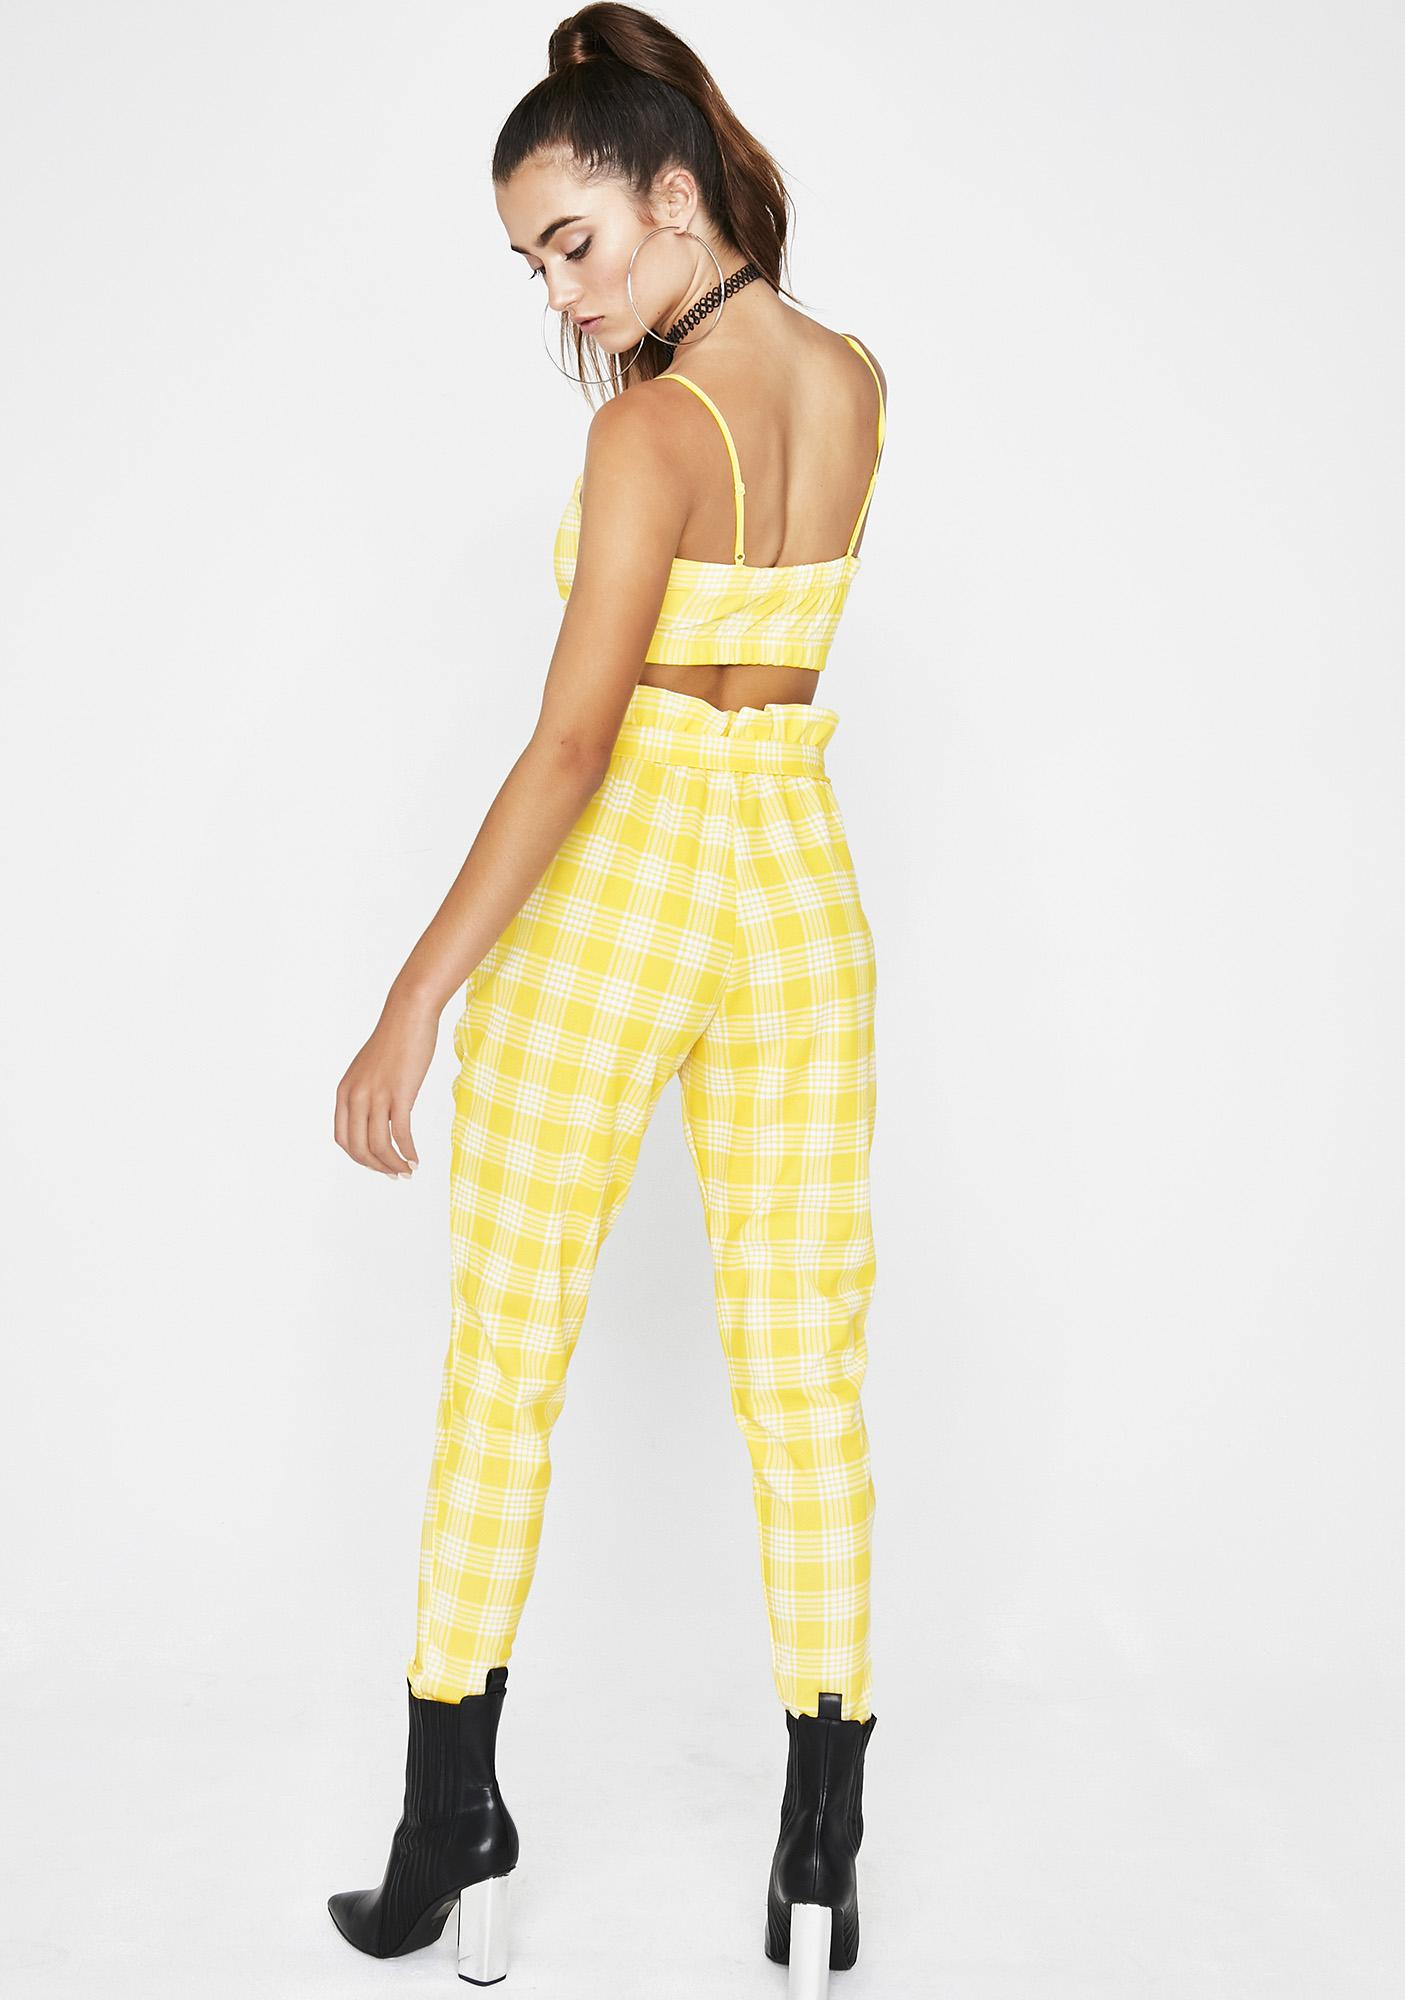 Sunny About That Life Plaid Set